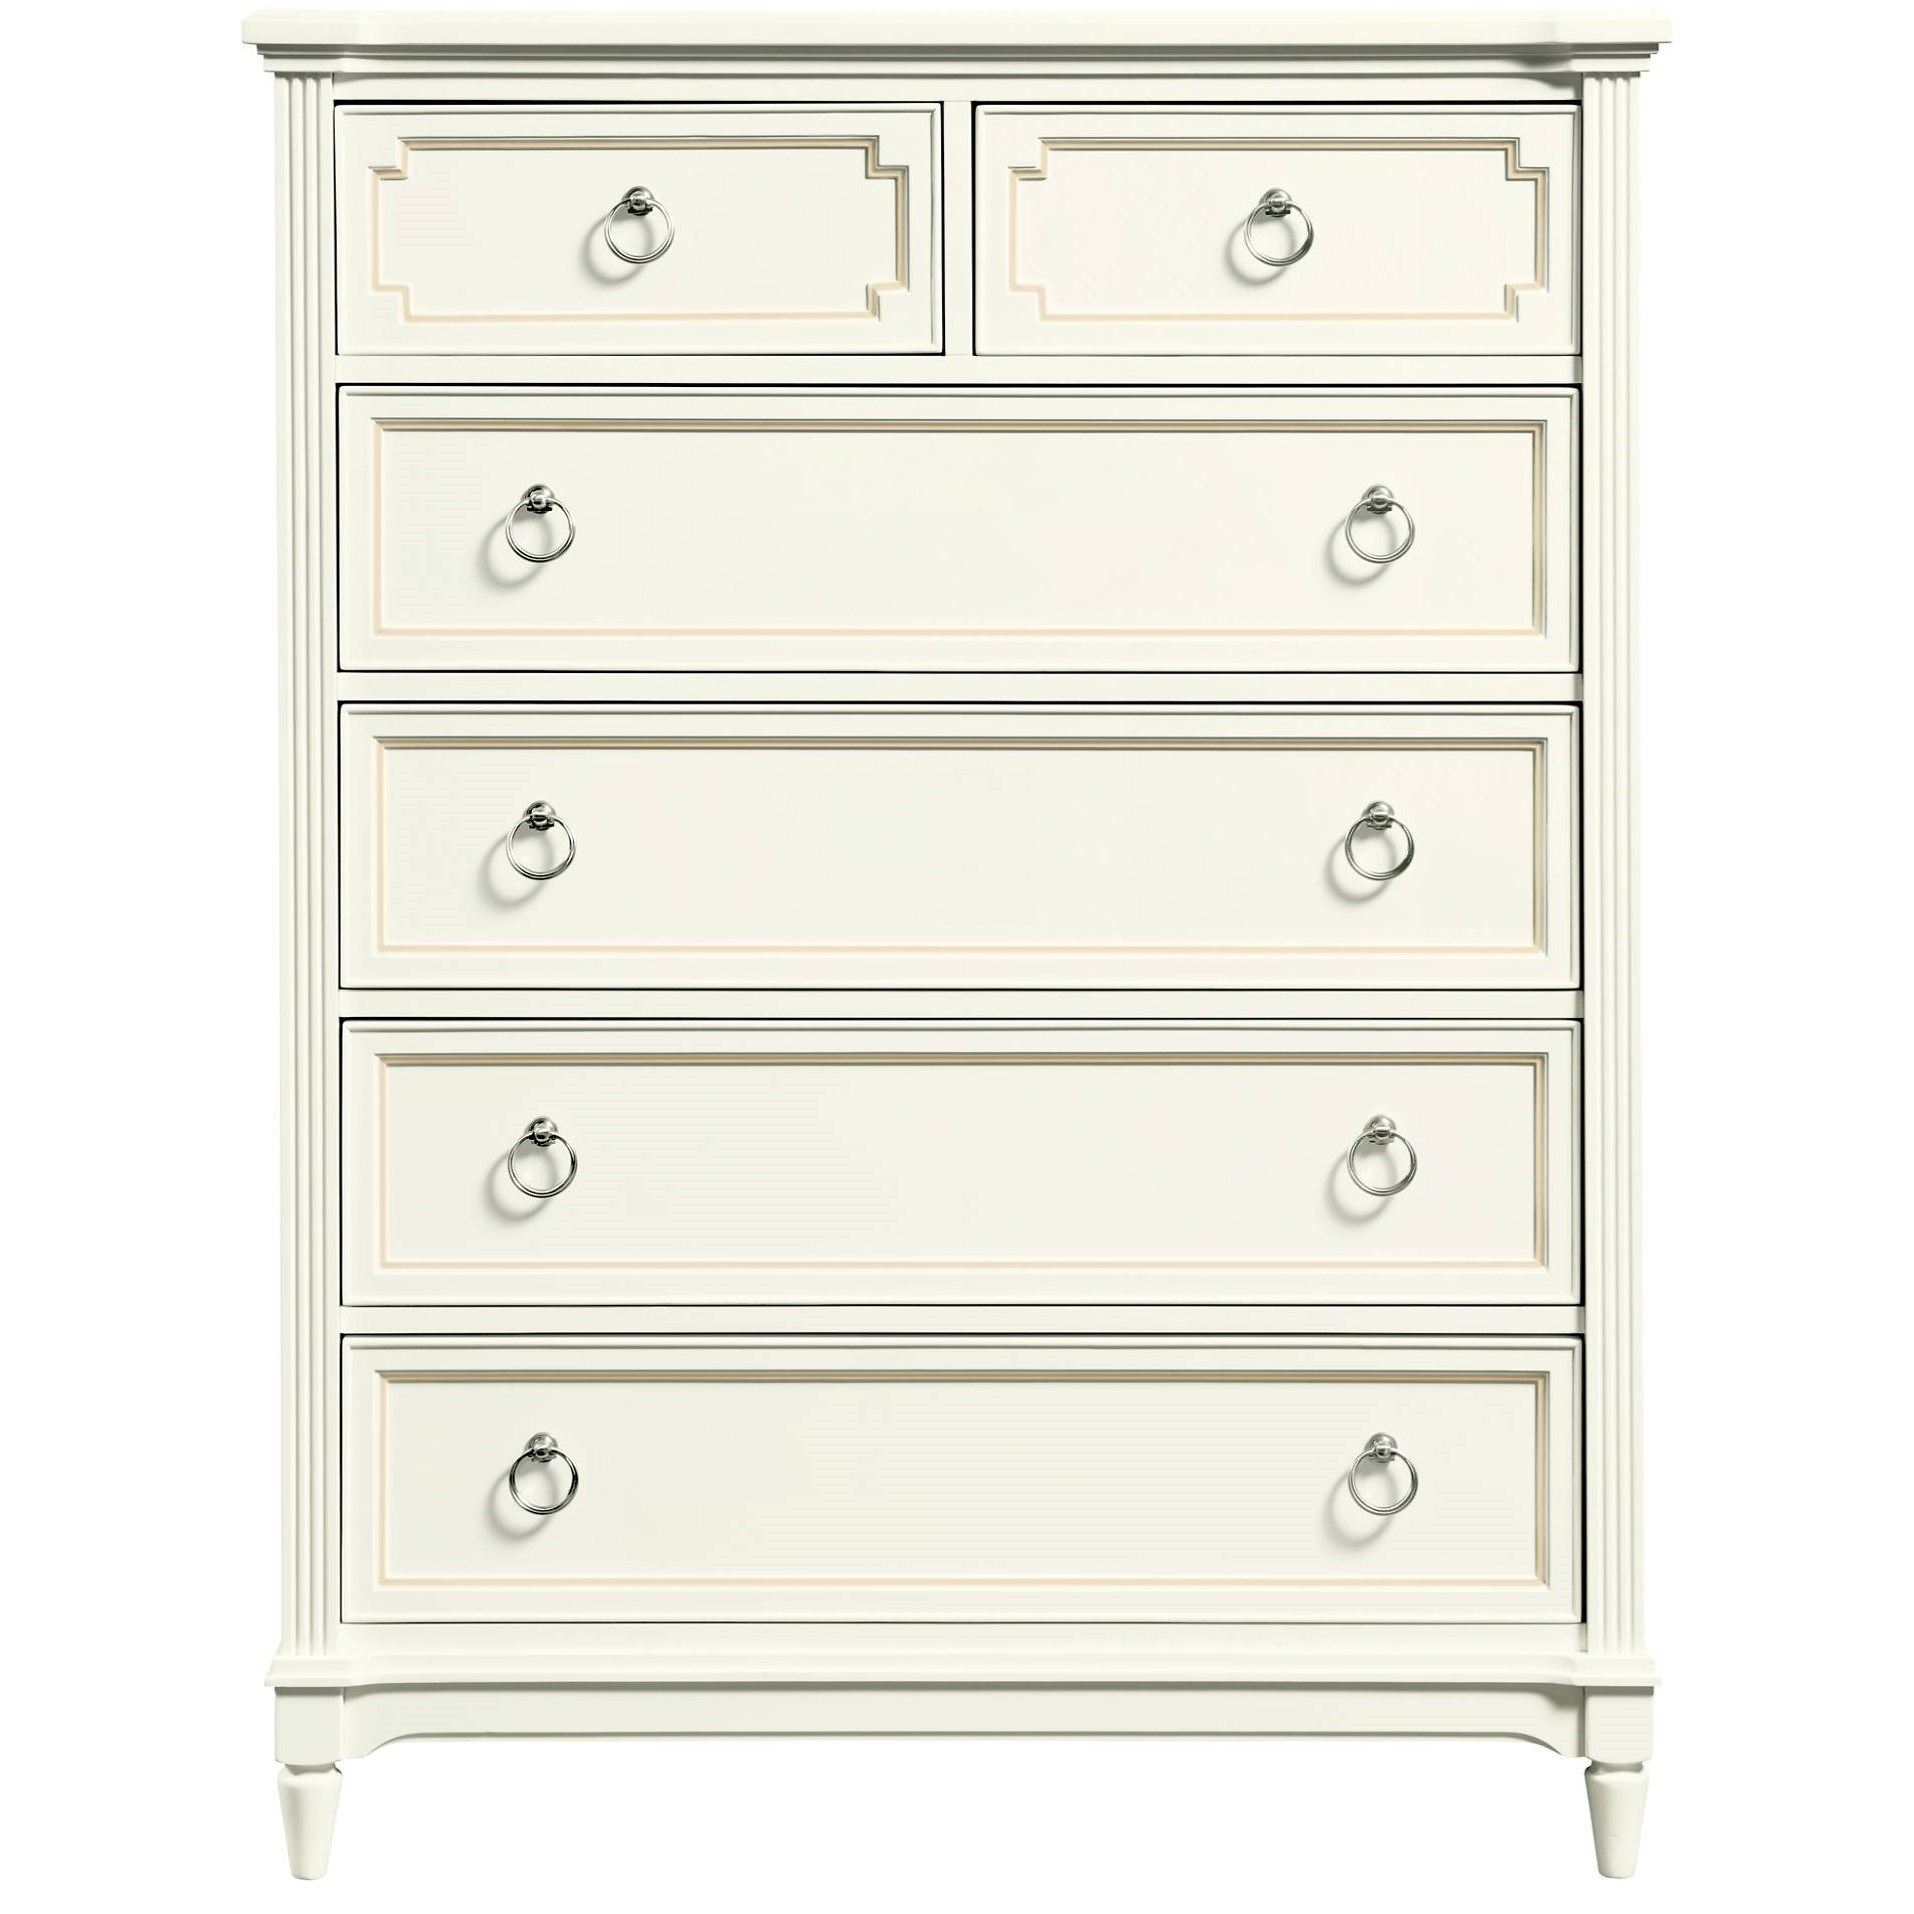 Stone & Leigh Furniture Clementine Court Chest - Item Number: 537-23-12